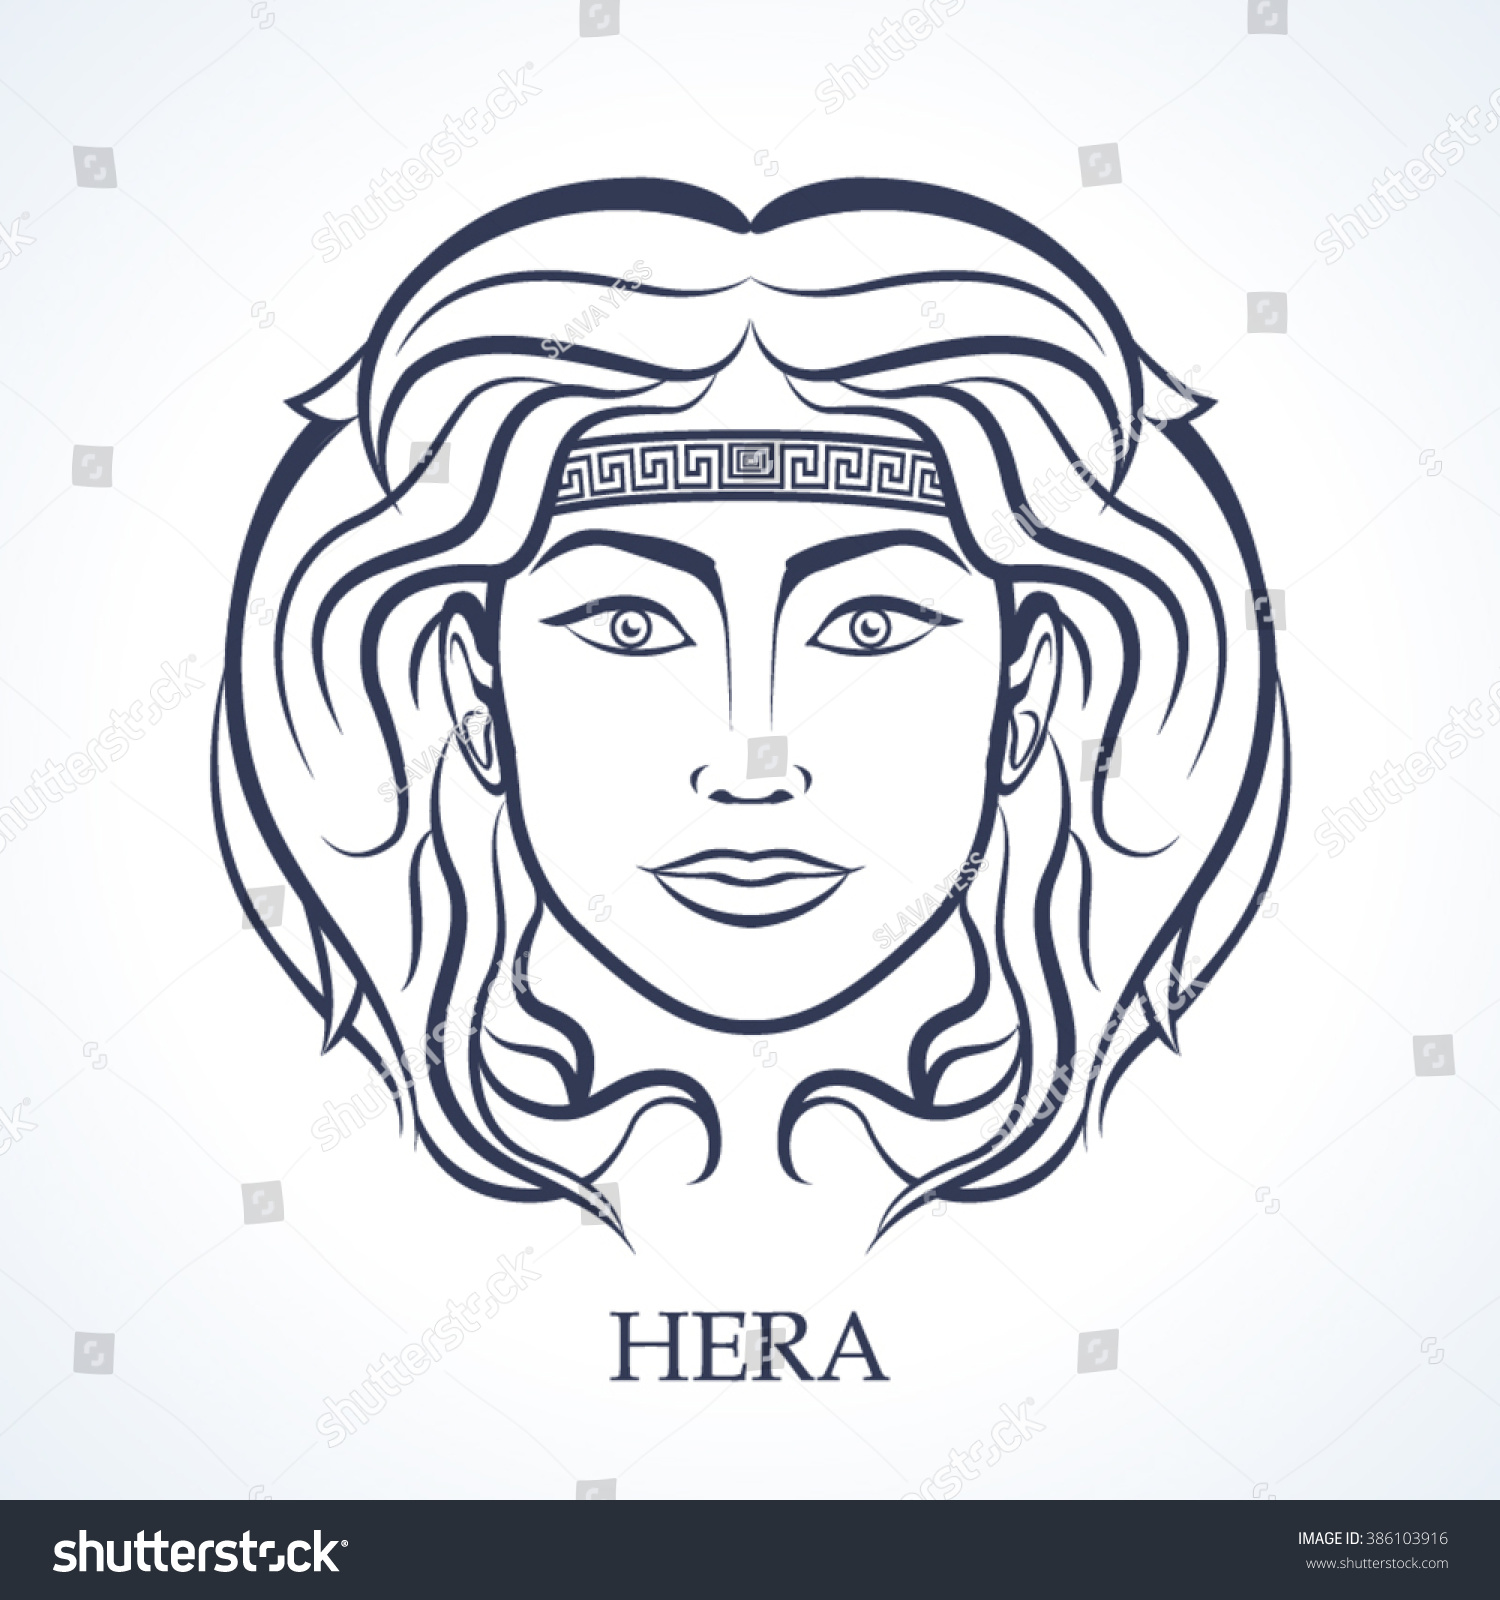 Hera Drawing Head | www.pixshark.com - Images Galleries With A Bite!